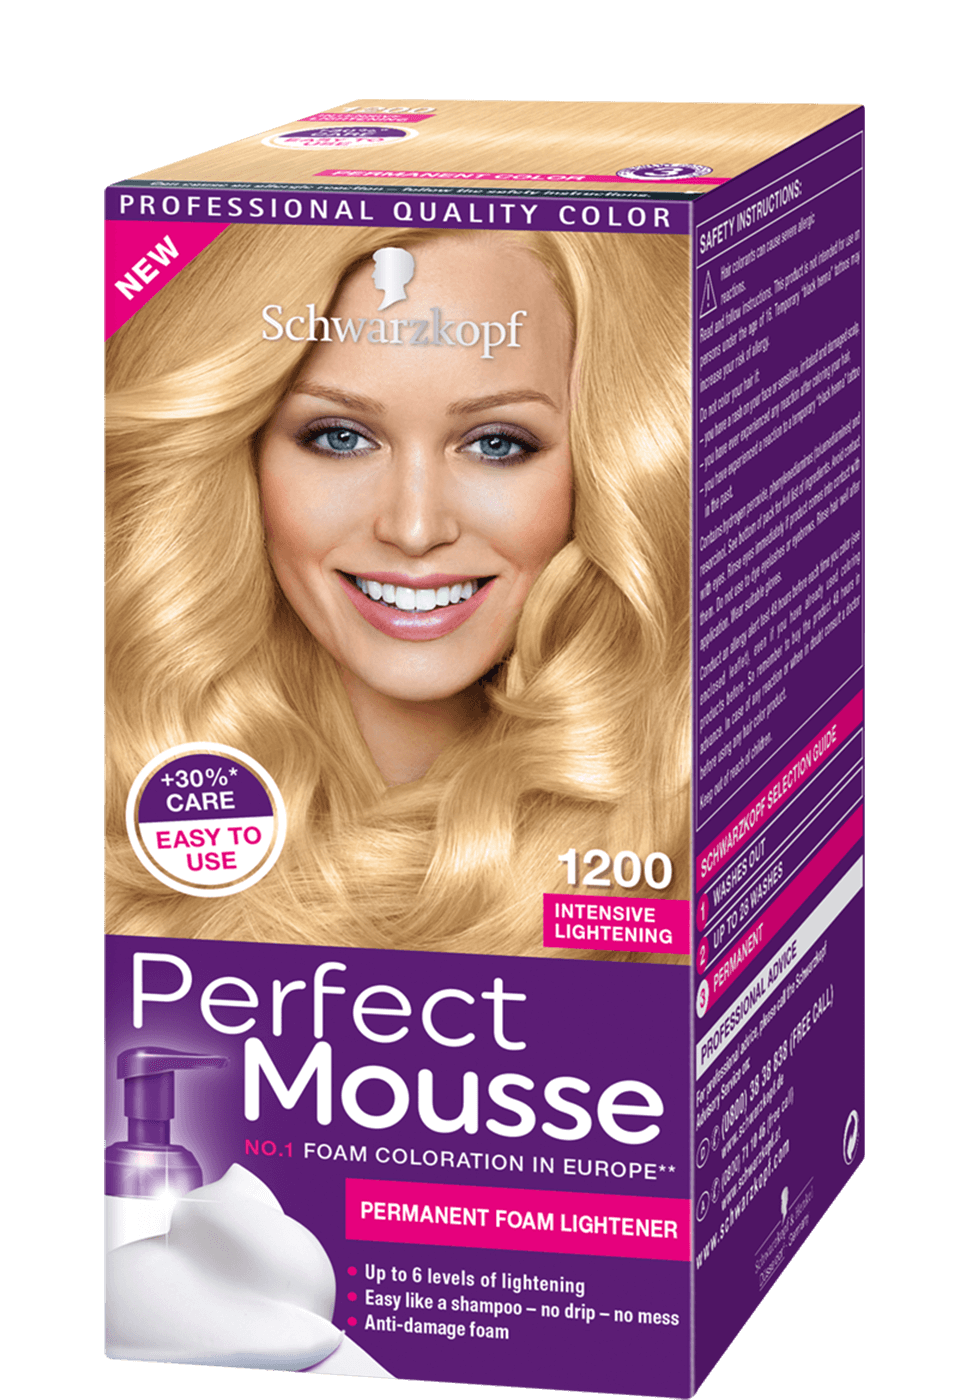 perfect_mousse_com_1200_intensive_lightening_970x1400